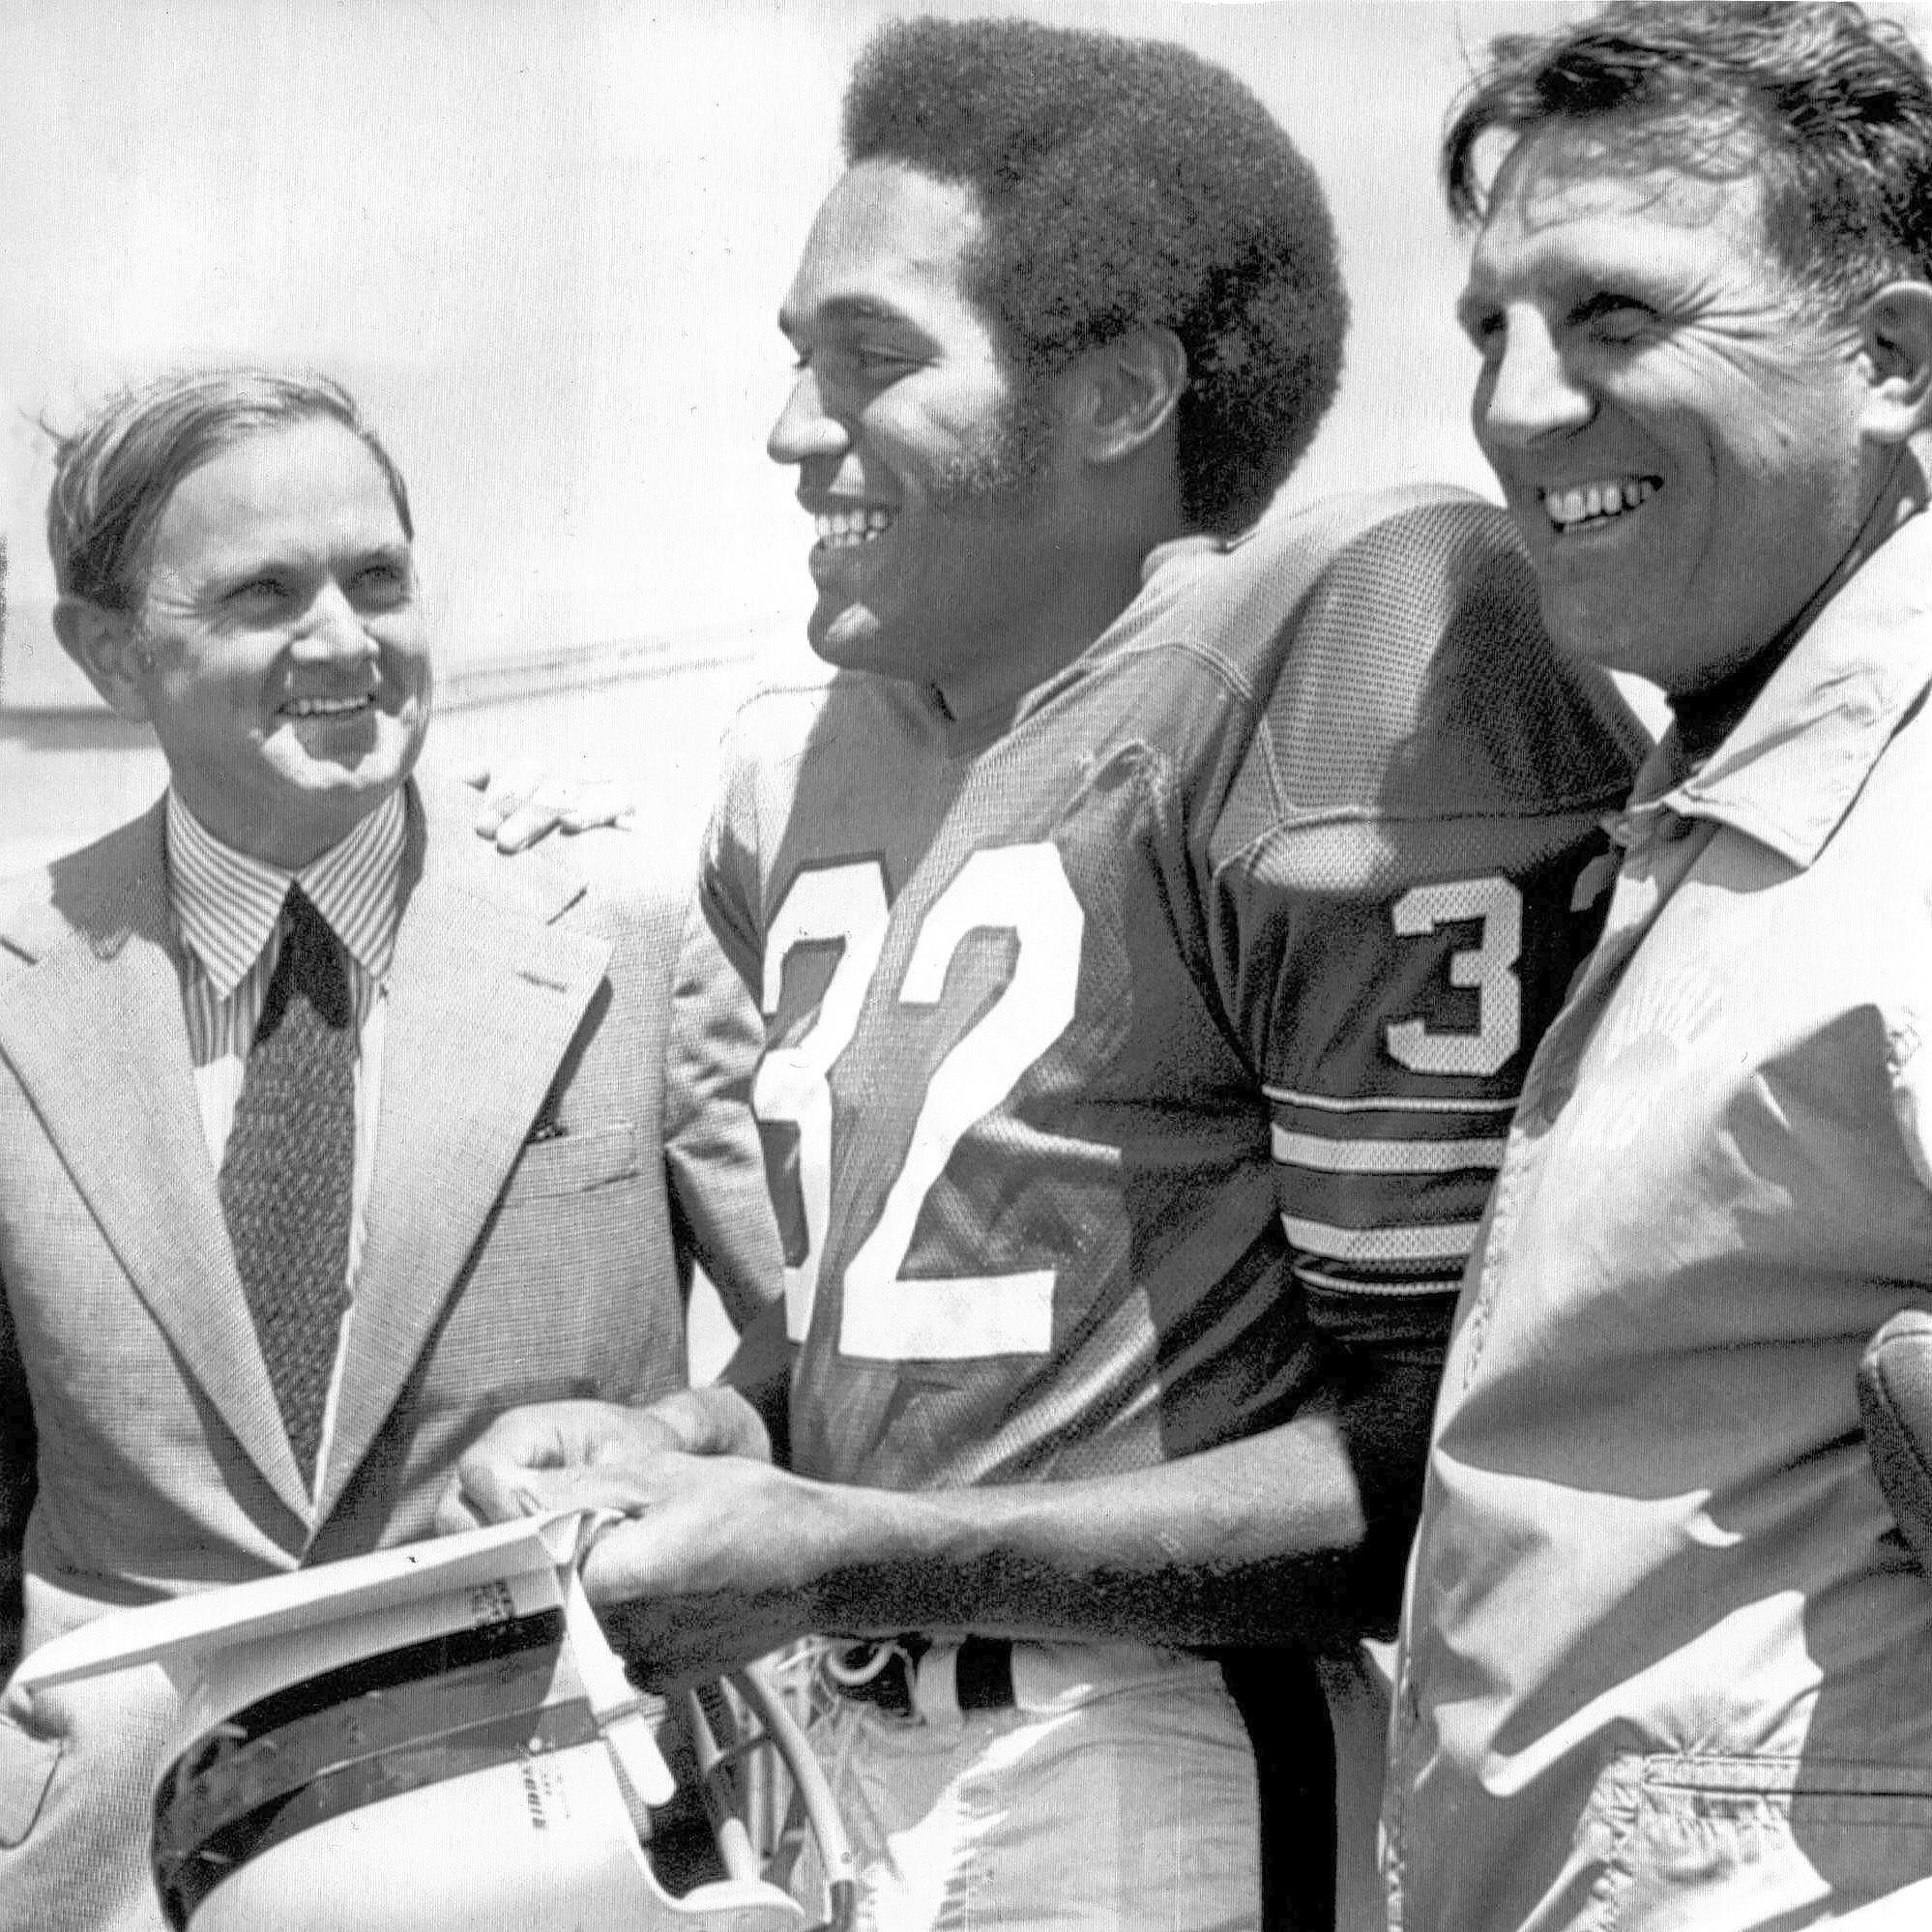 Buffalo Bills founder Ralph Wilson, left, with O.J. Simpson, center, and coach Lou Saban in 1972.